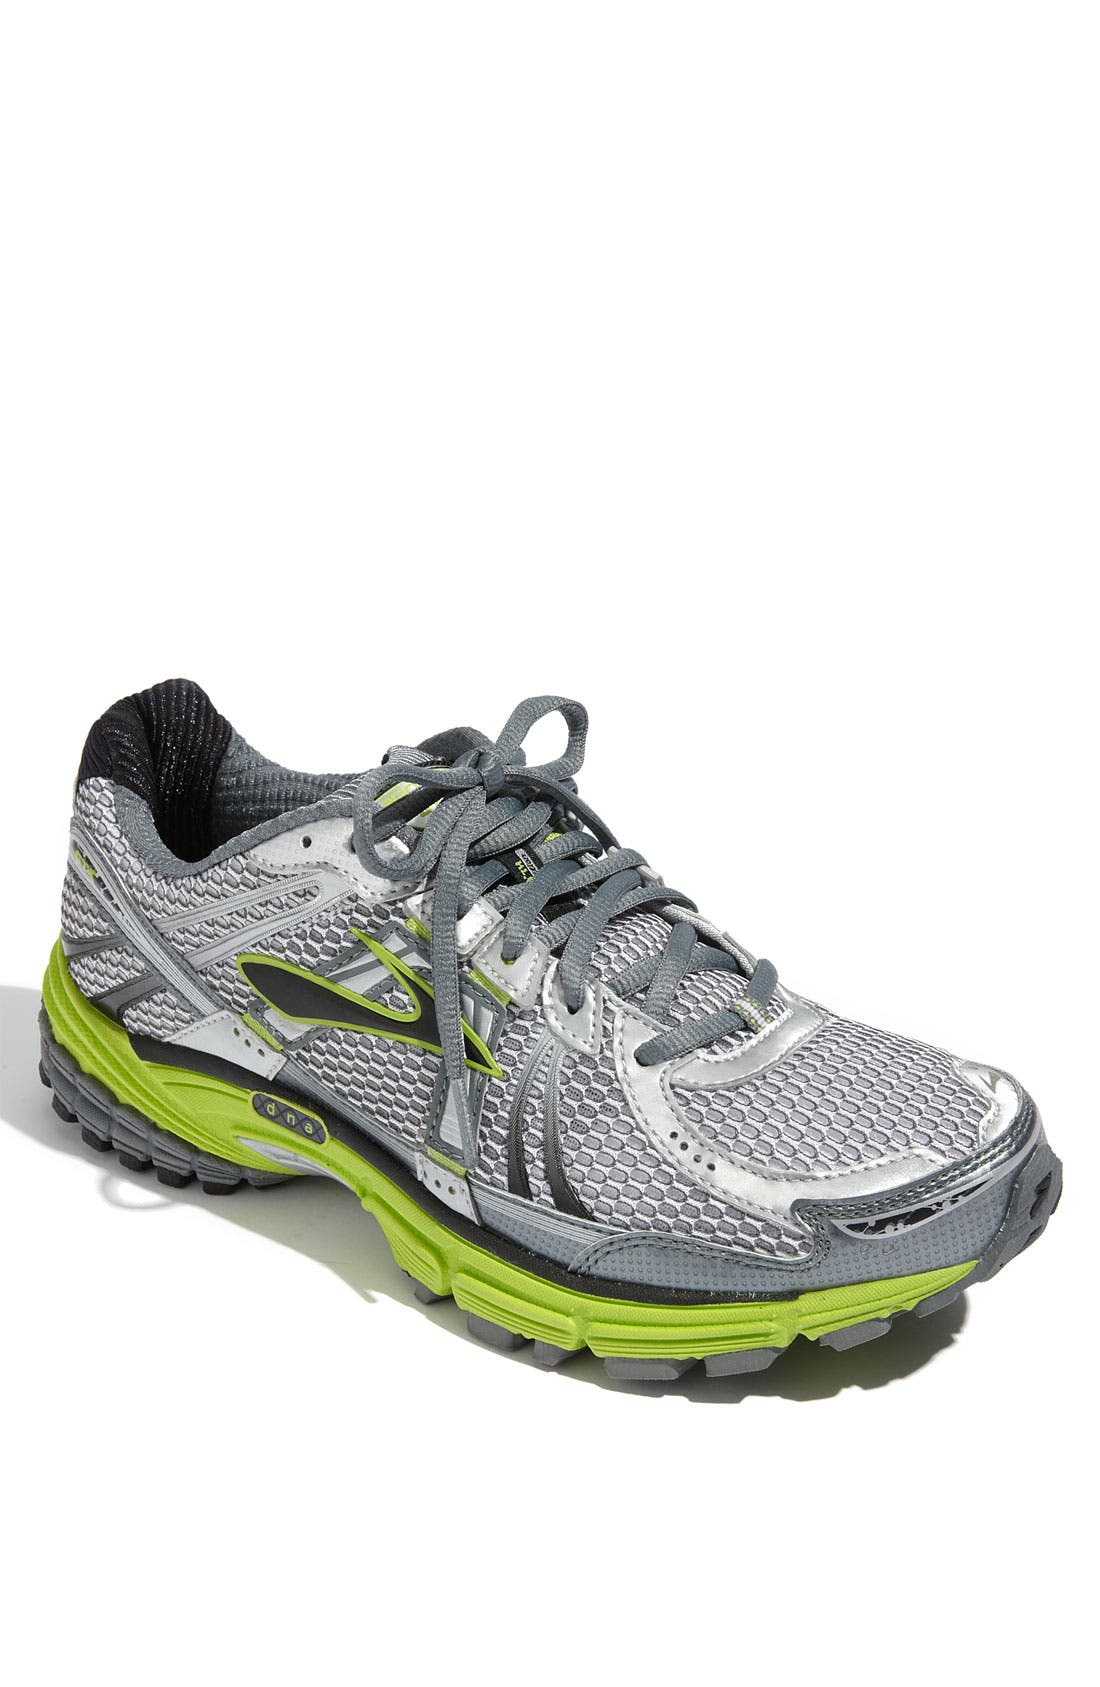 Alternate Image 1 Selected - Brooks 'Adrenaline GTS 12' Running Shoe (Men)